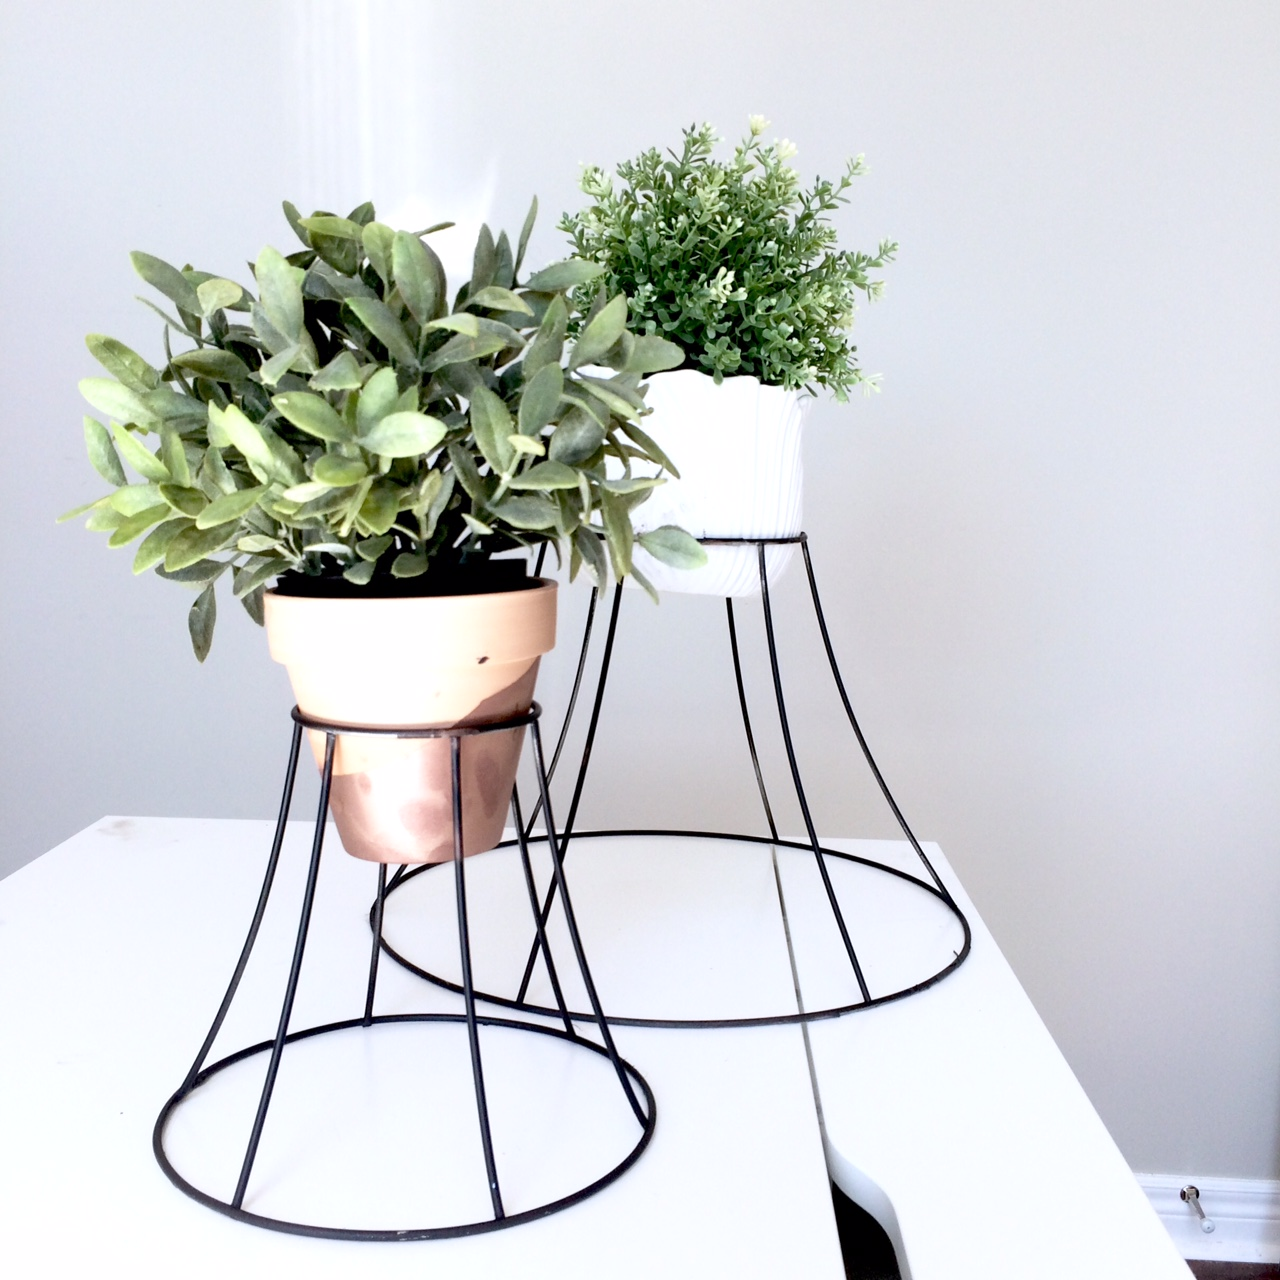 Diy lampshade plant stand harlow thistle home design the spring flowers have got to be right around the corner right bueller well in any case perhaps this diy lampshade plant stand might help them along greentooth